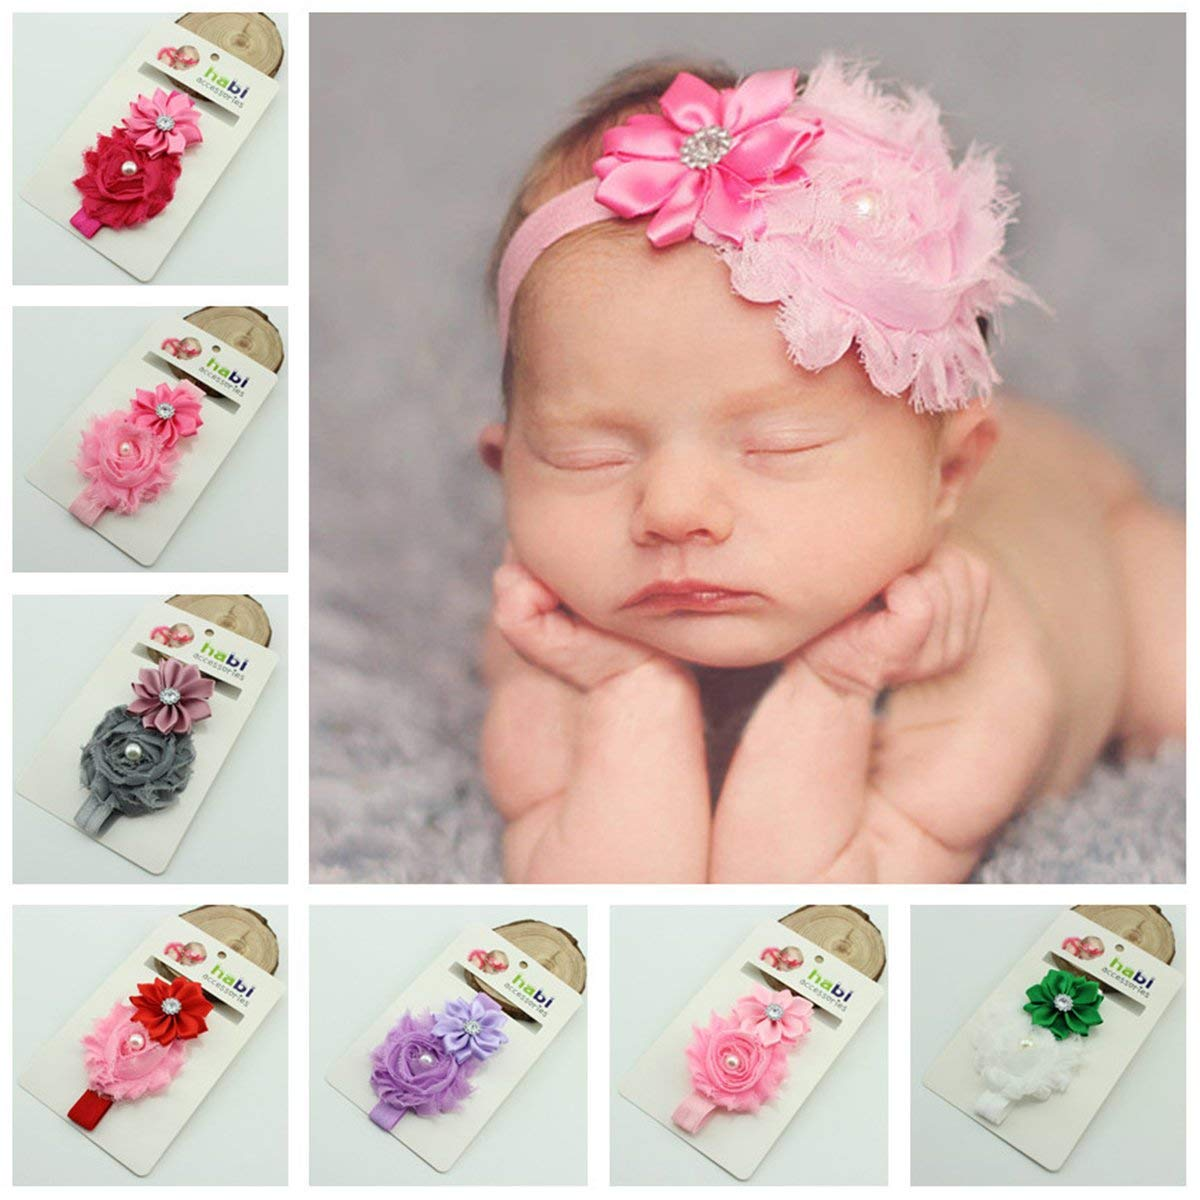 10 Colors Cute Infant Baby Girls Sweet Flower & Pearl Decor Elastic Headband Hair Band Hair Accessories Photo Props